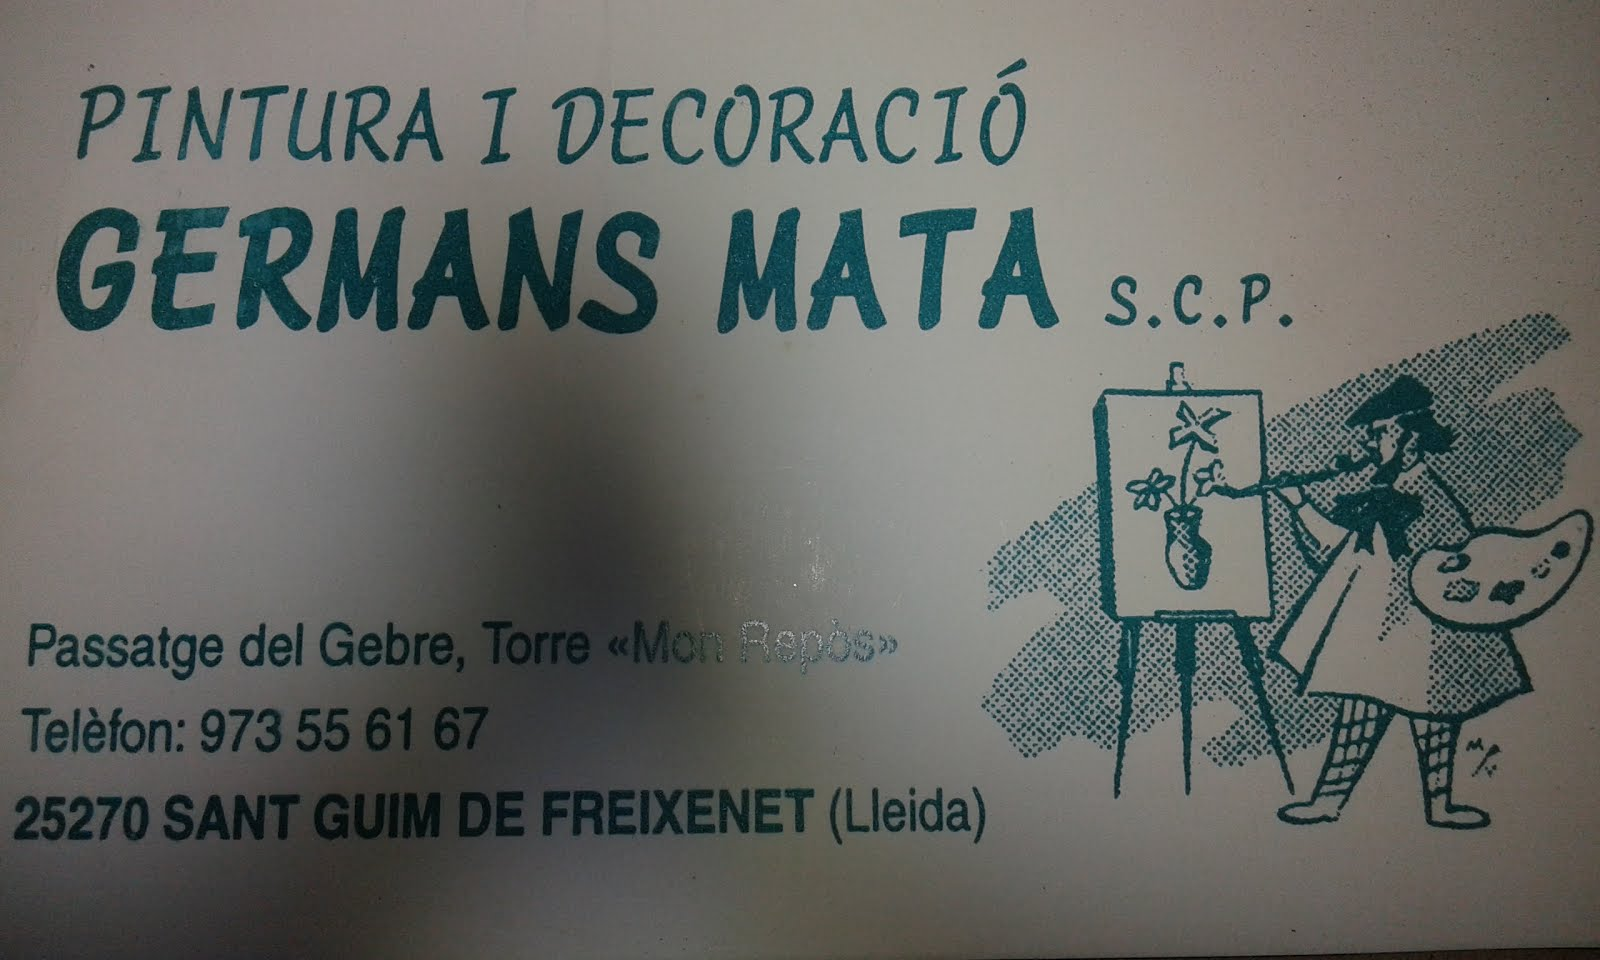 Pintura i Decoració GERMANS MATA